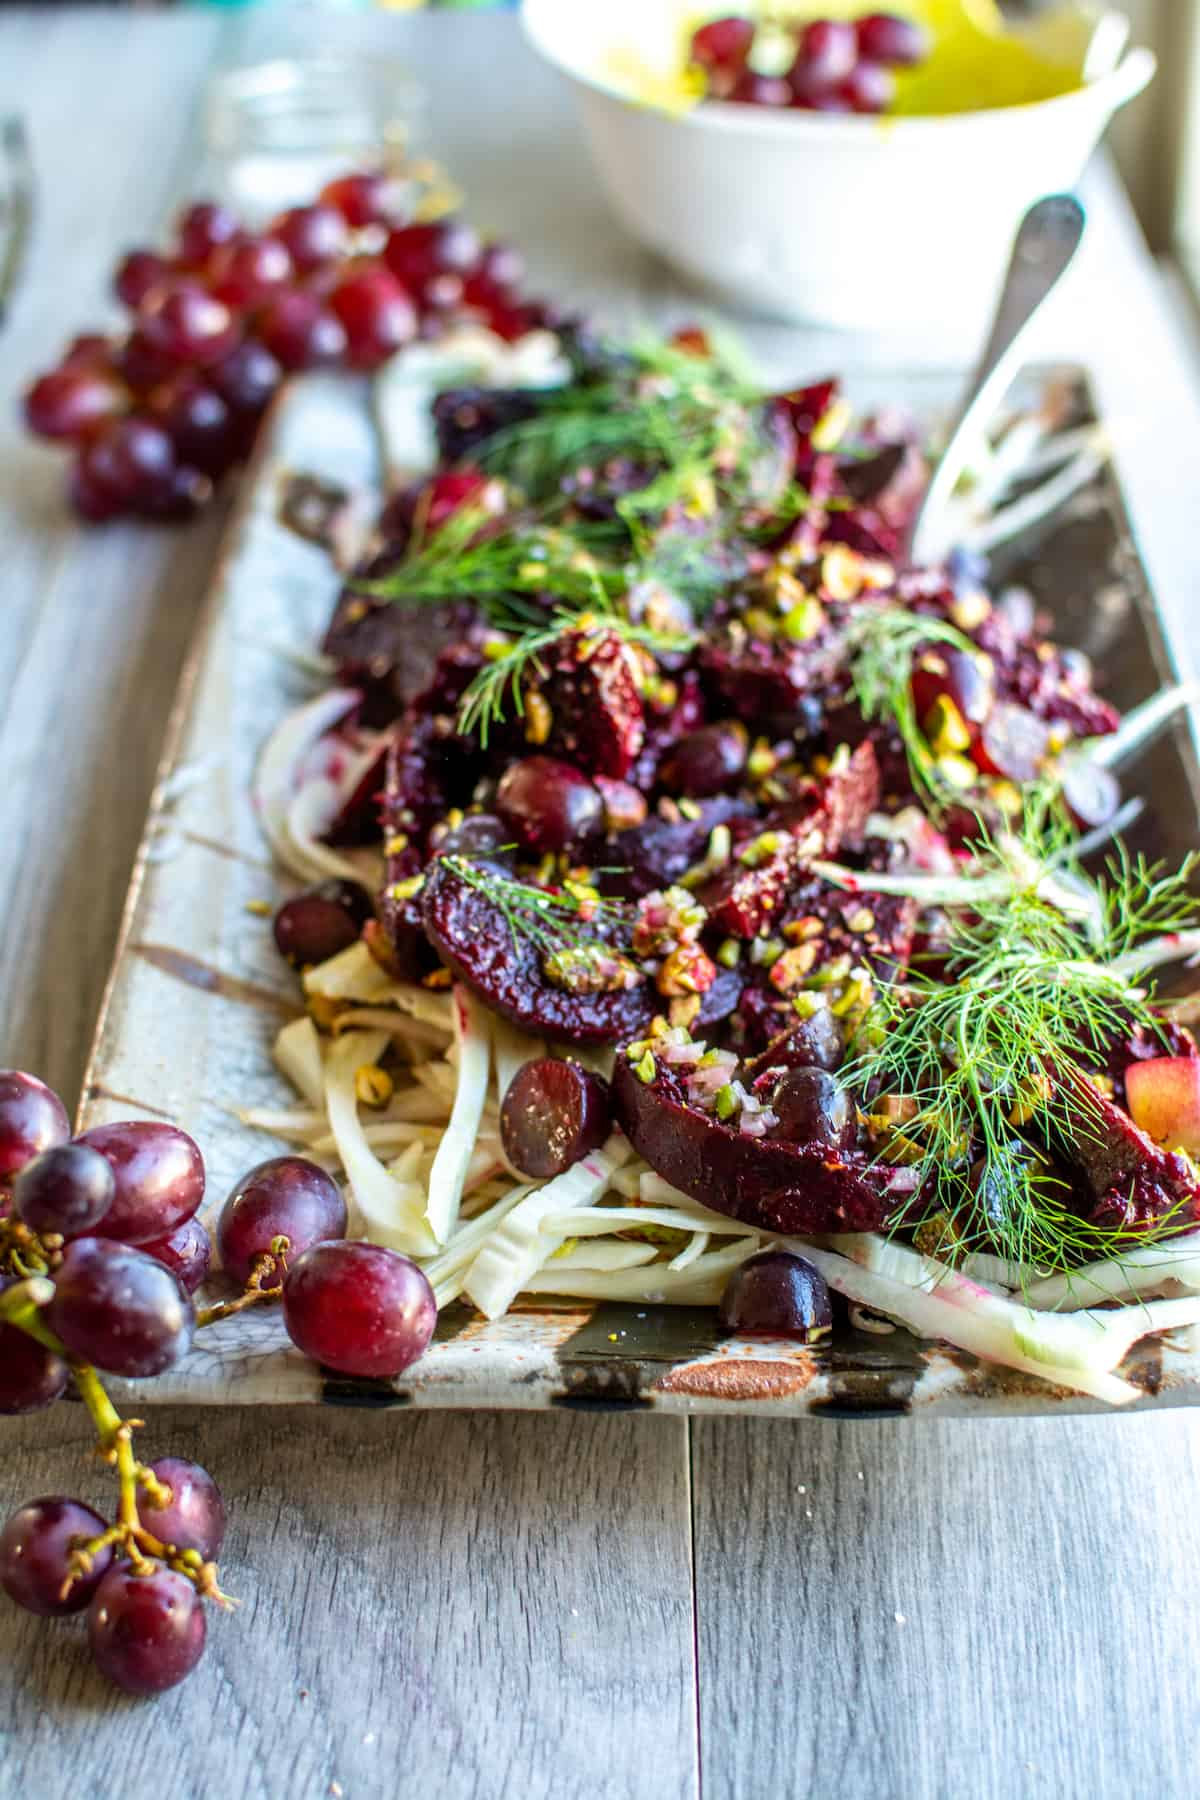 A rectangular ceramic platter filled with roasted beets, sliced fennel, red grapes, and chopped pistachios.